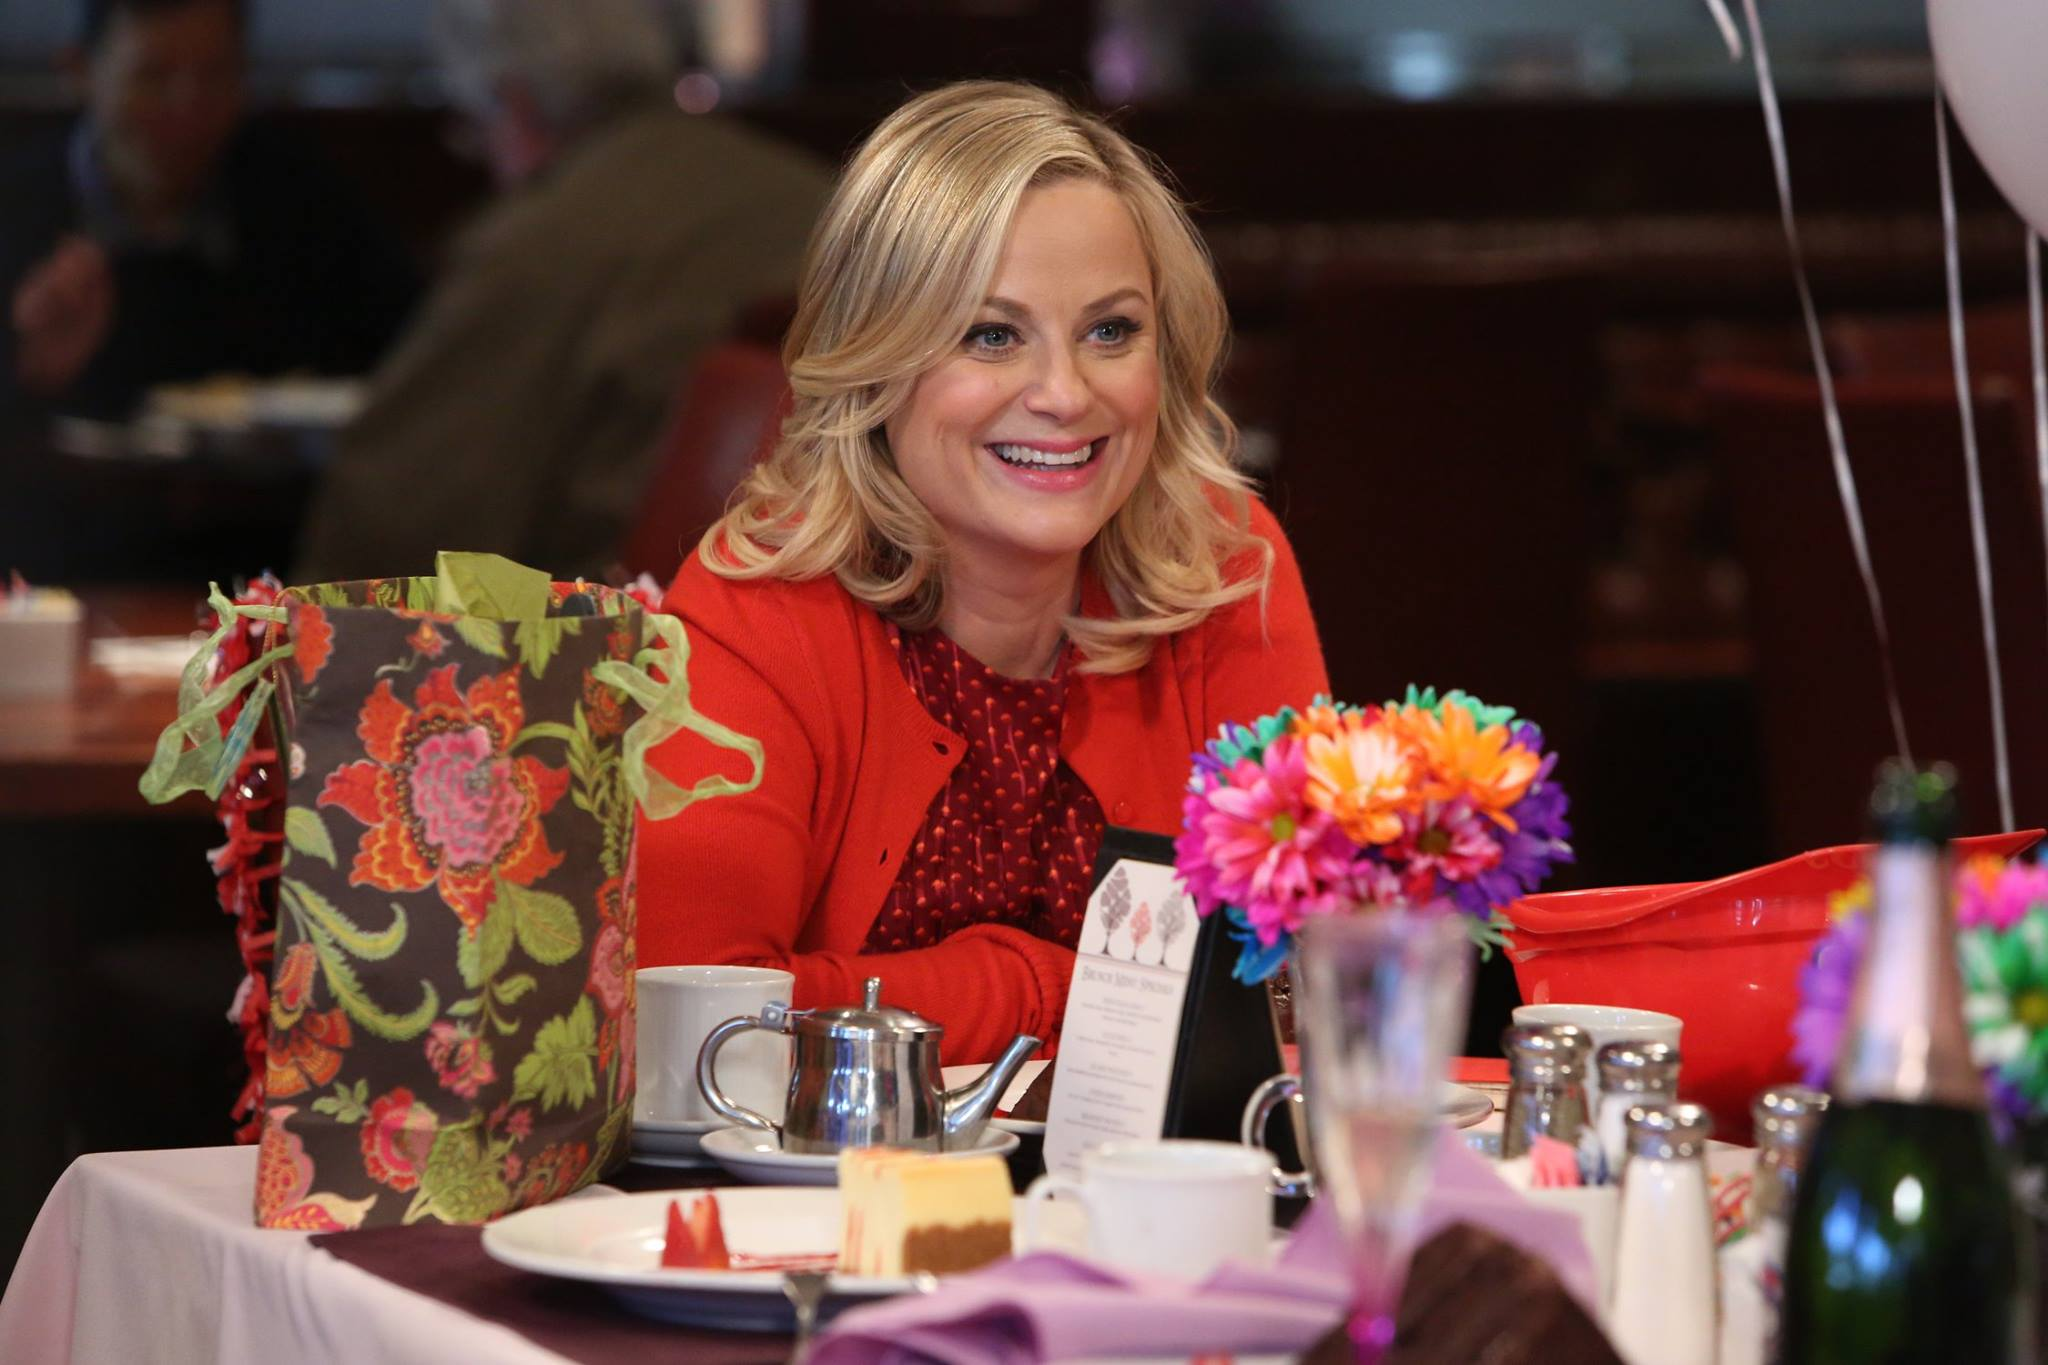 Parks and Recreation - 06x17 - Galentine's Day